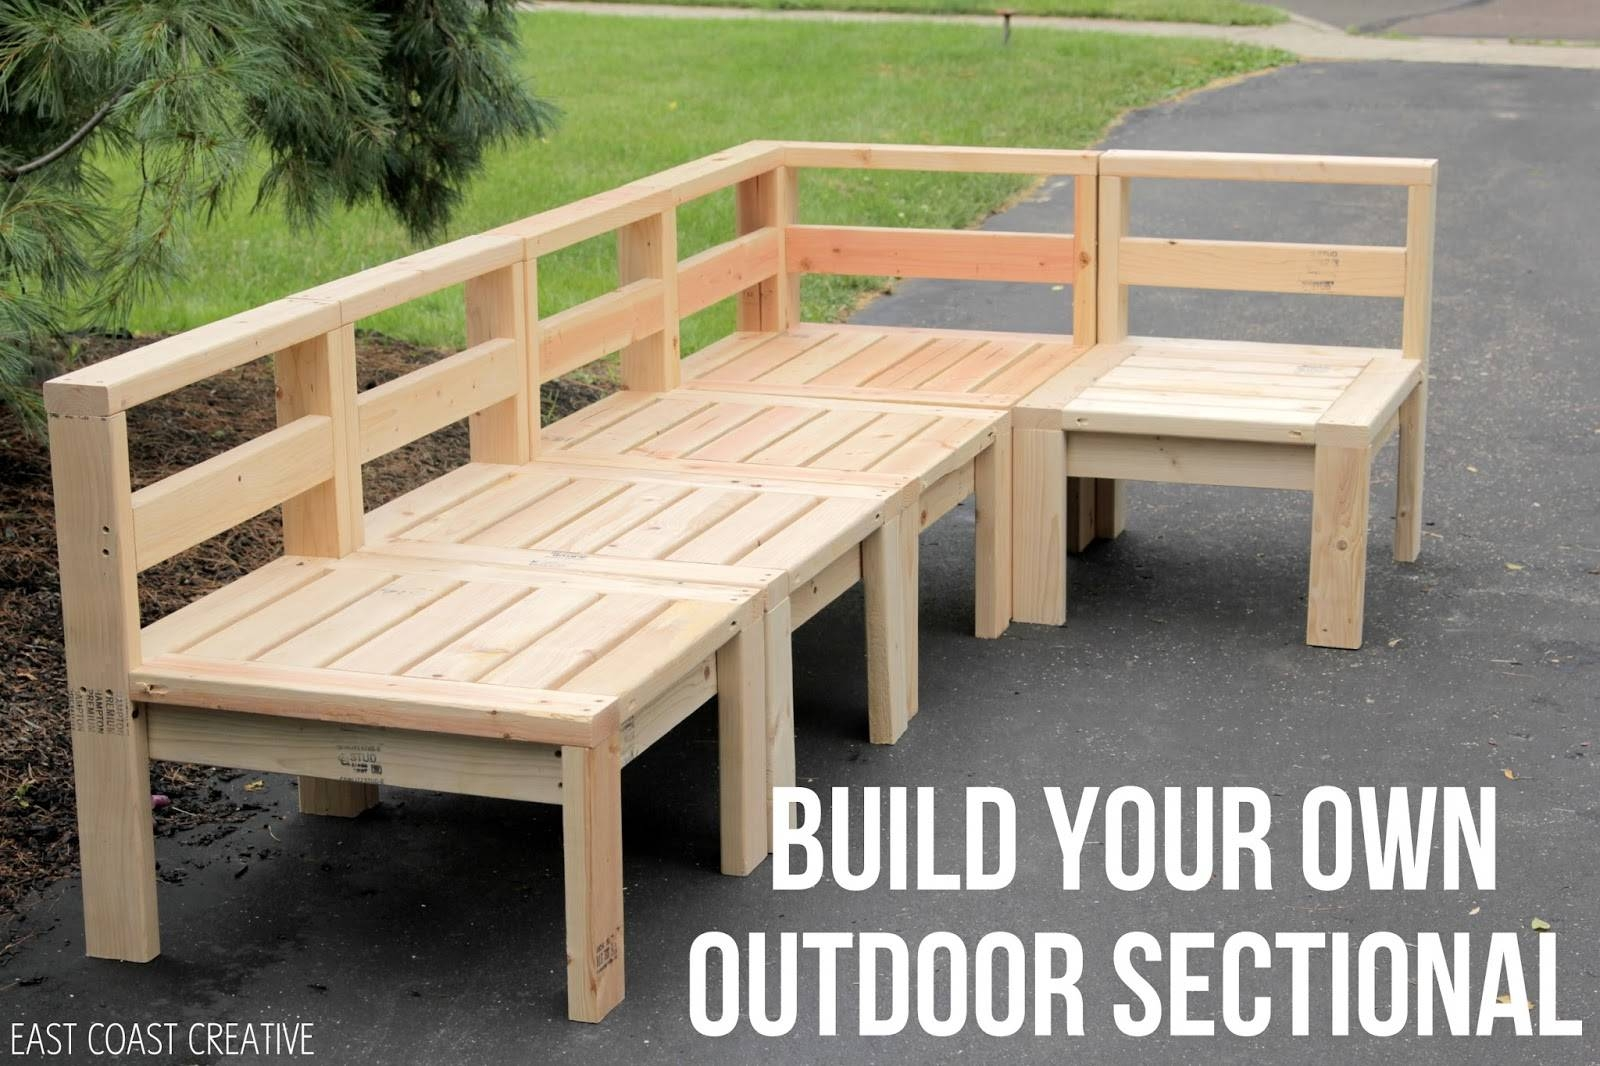 How To Build An Outdoor Sectional {Knock It Off} - East Coast inside Diy Sectional Sofa (Image 20 of 30)